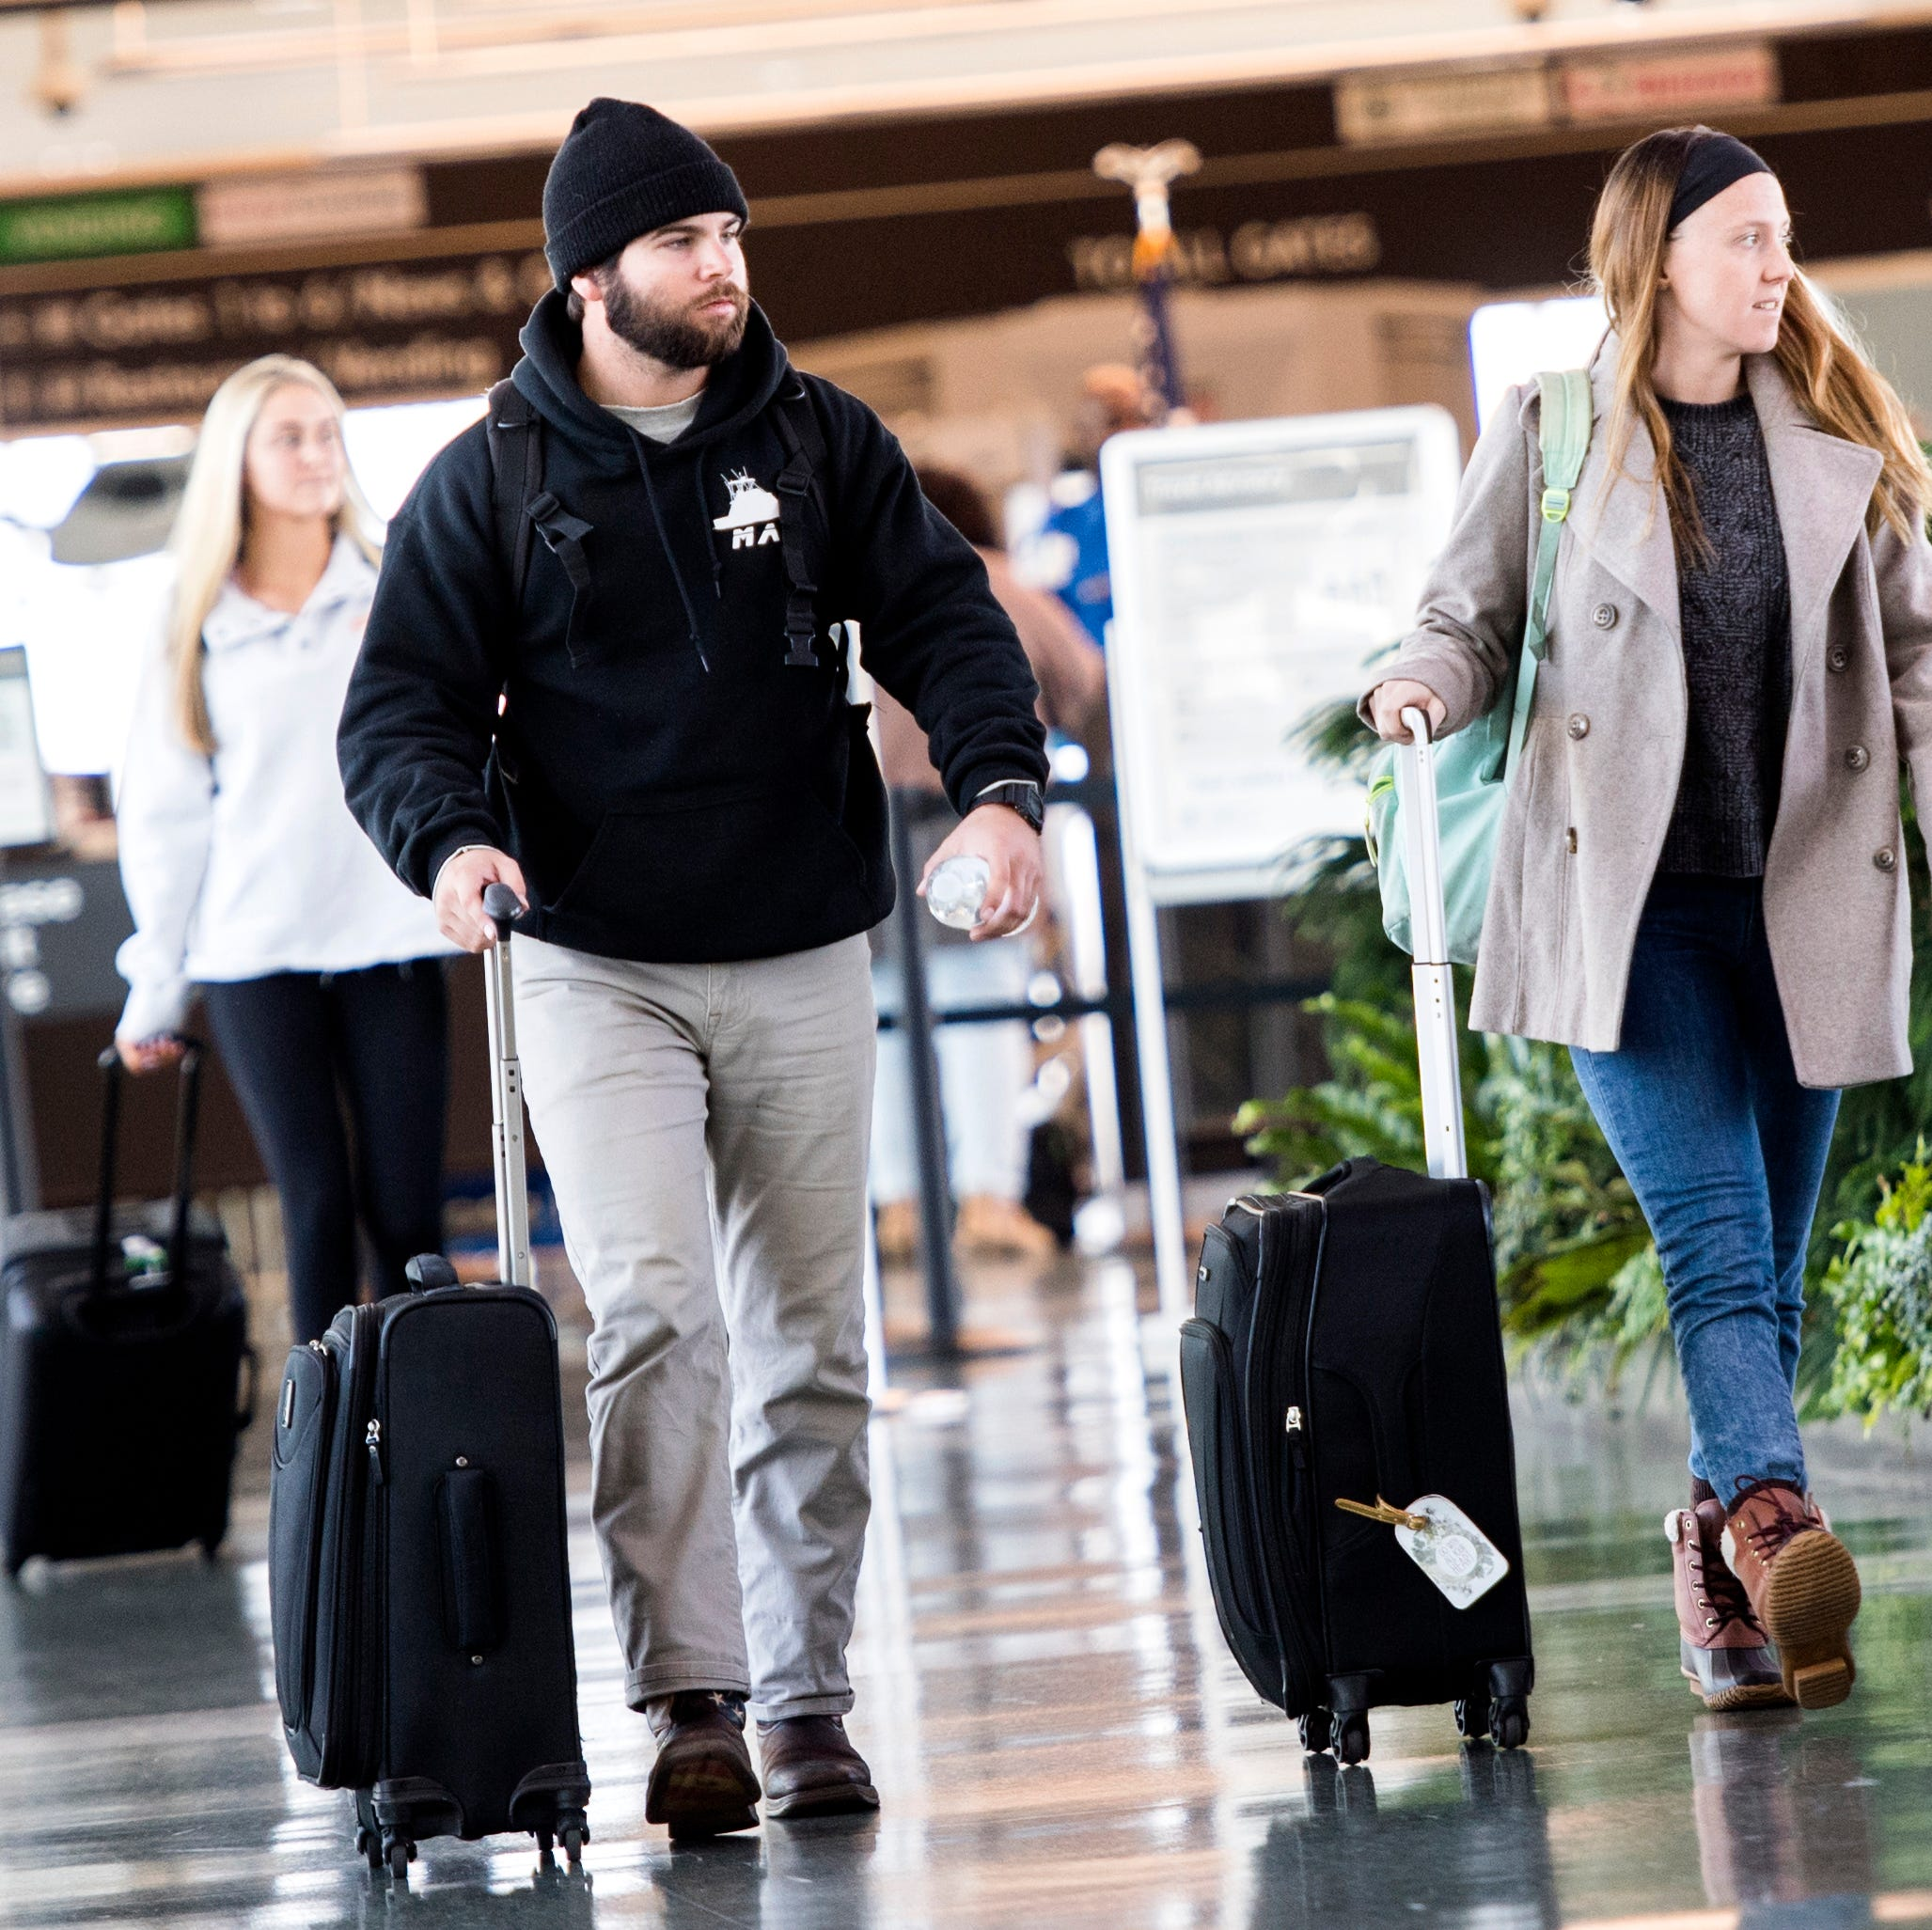 Flying out of McGhee Tyson? Airlines may let you reschedule due to winter storm